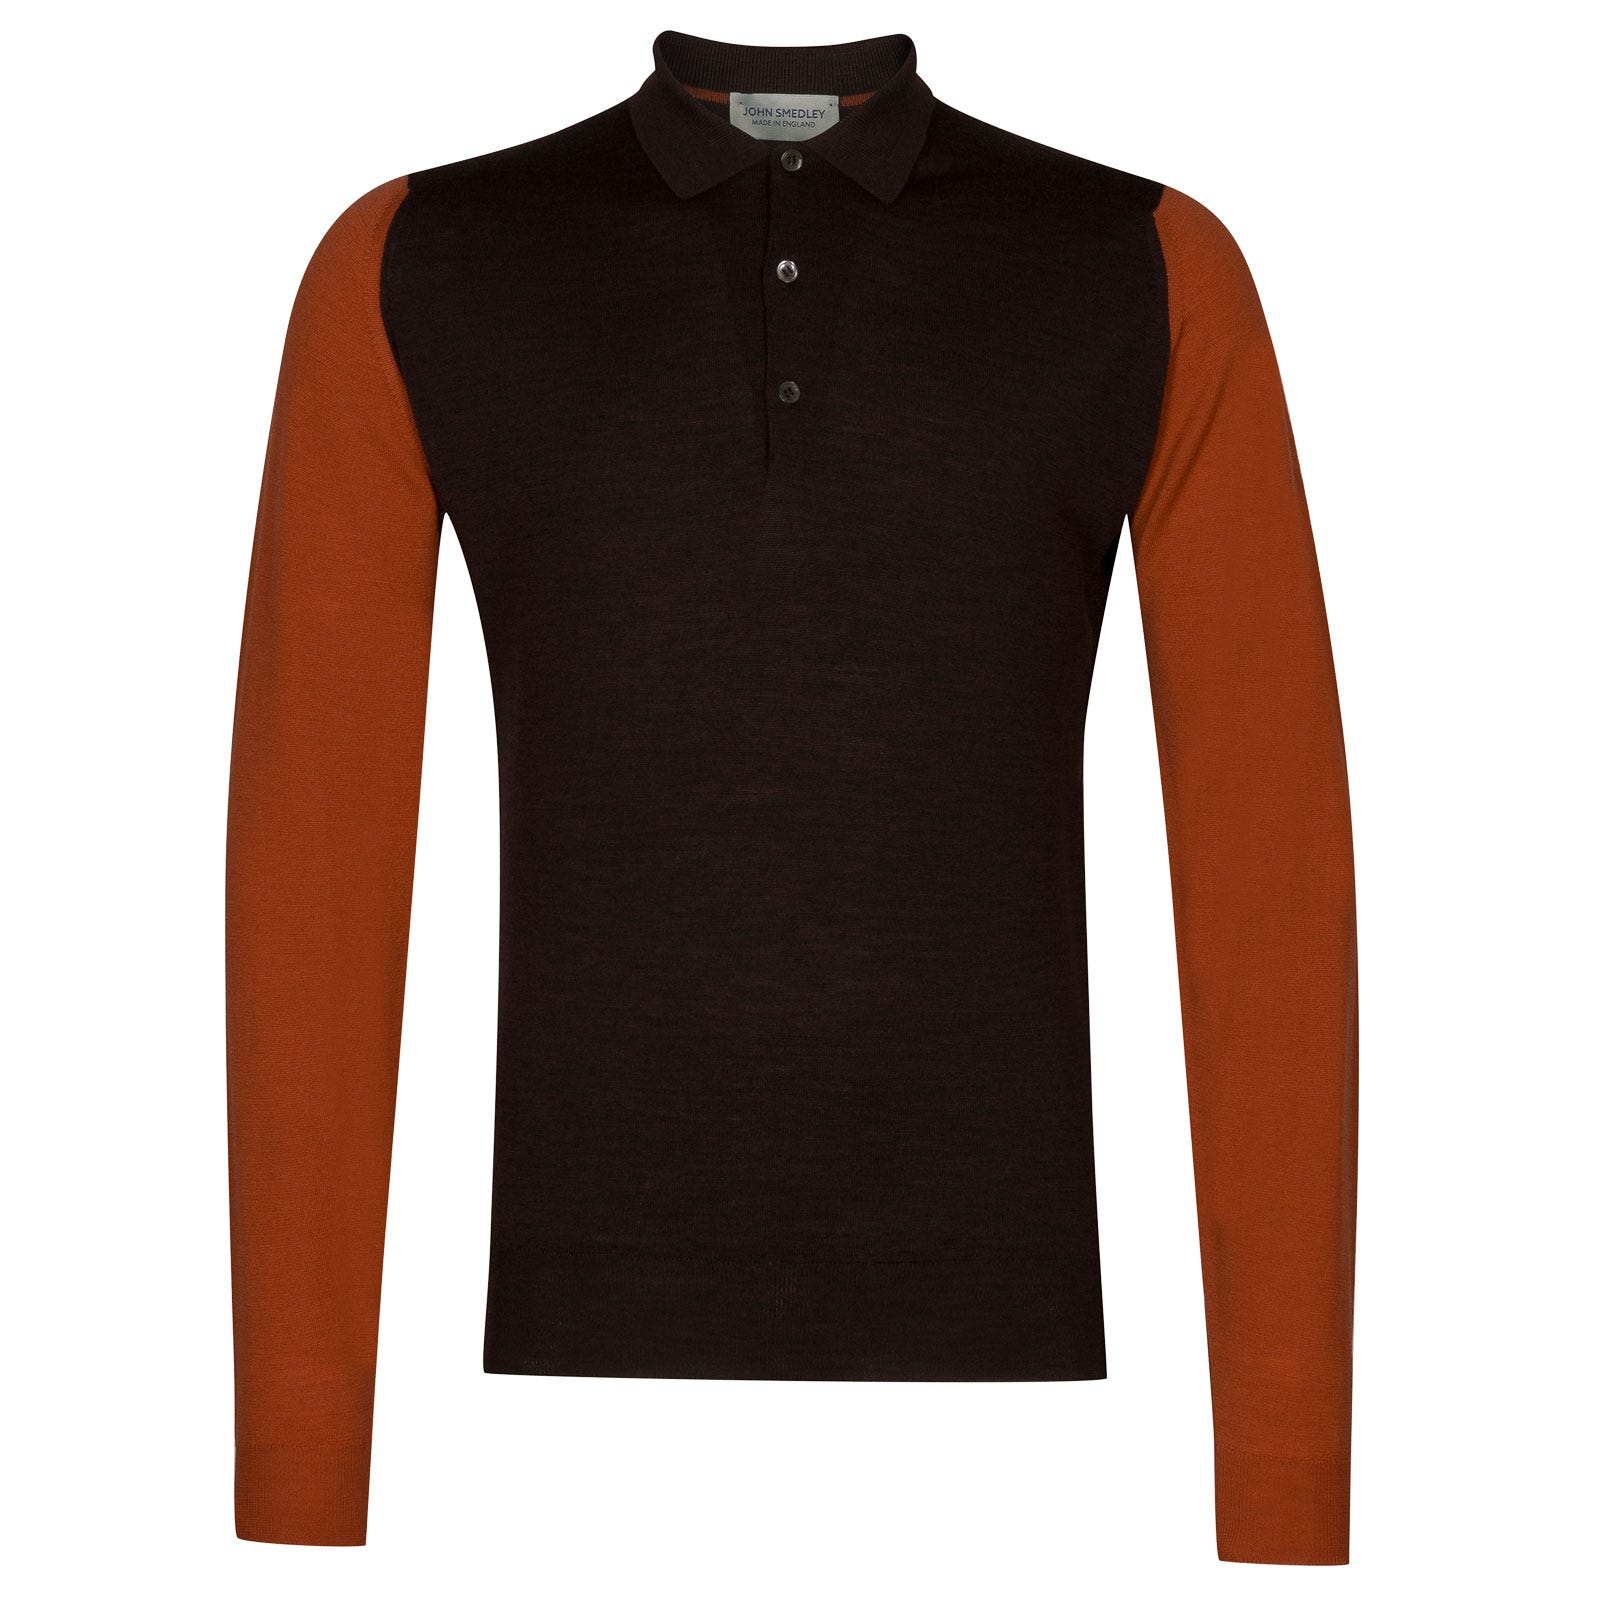 John Smedley Brightgate Merino Wool Shirt in Chestnut/Flare Orange-S